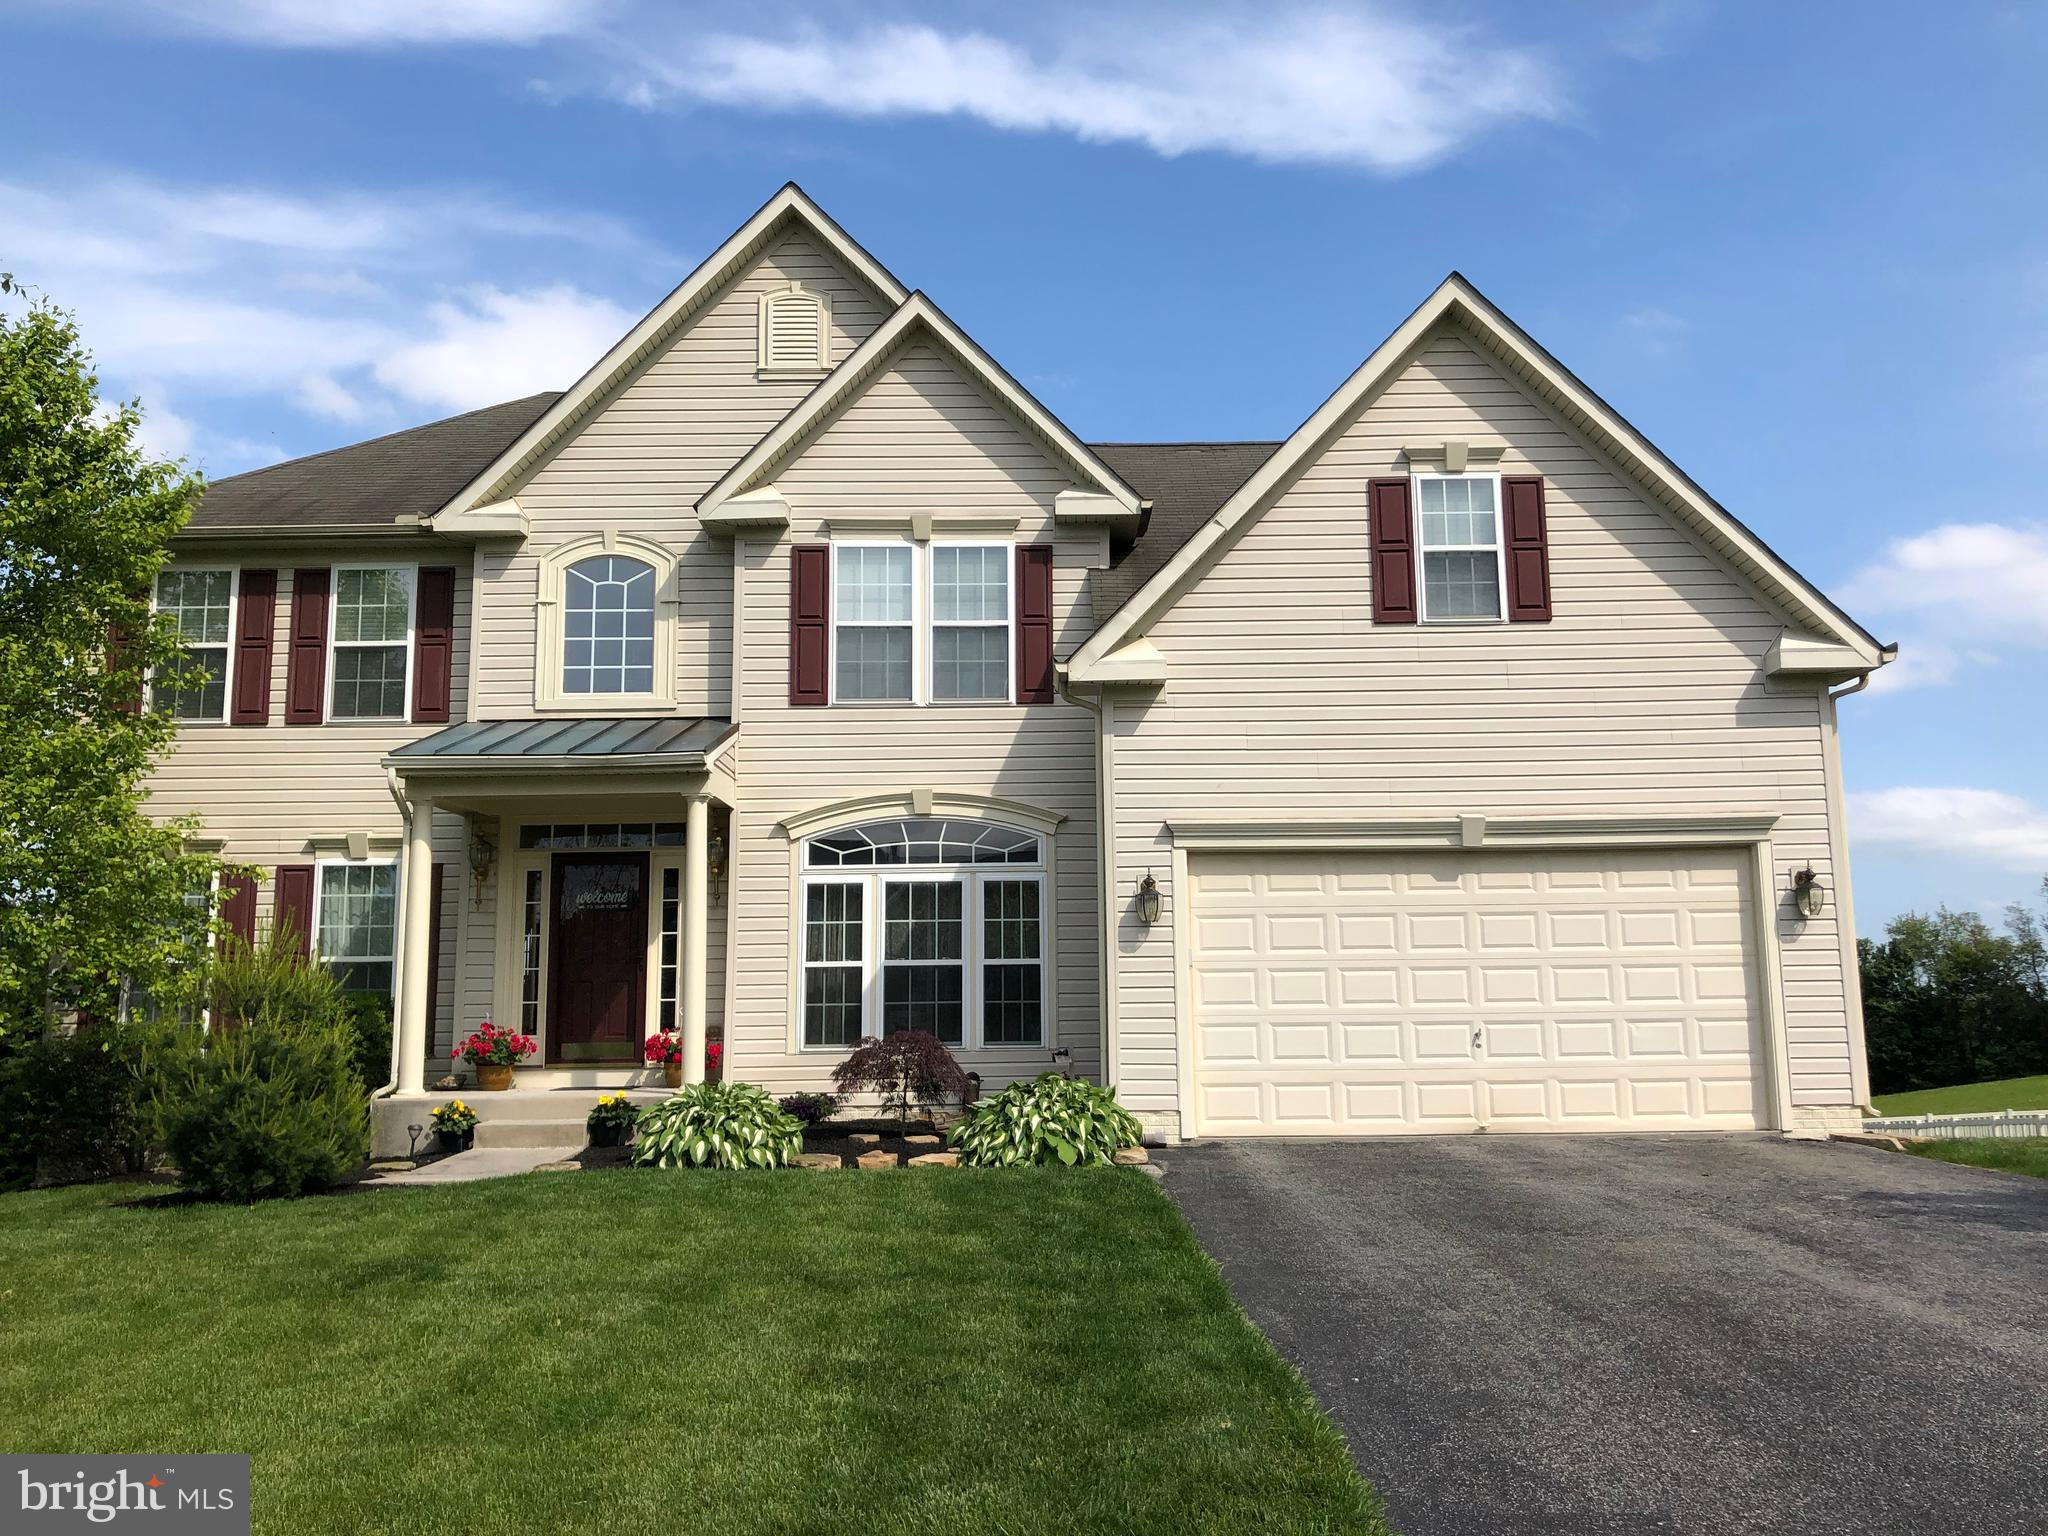 29 SMITH MILL ROAD, NEW FREEDOM, PA 17349